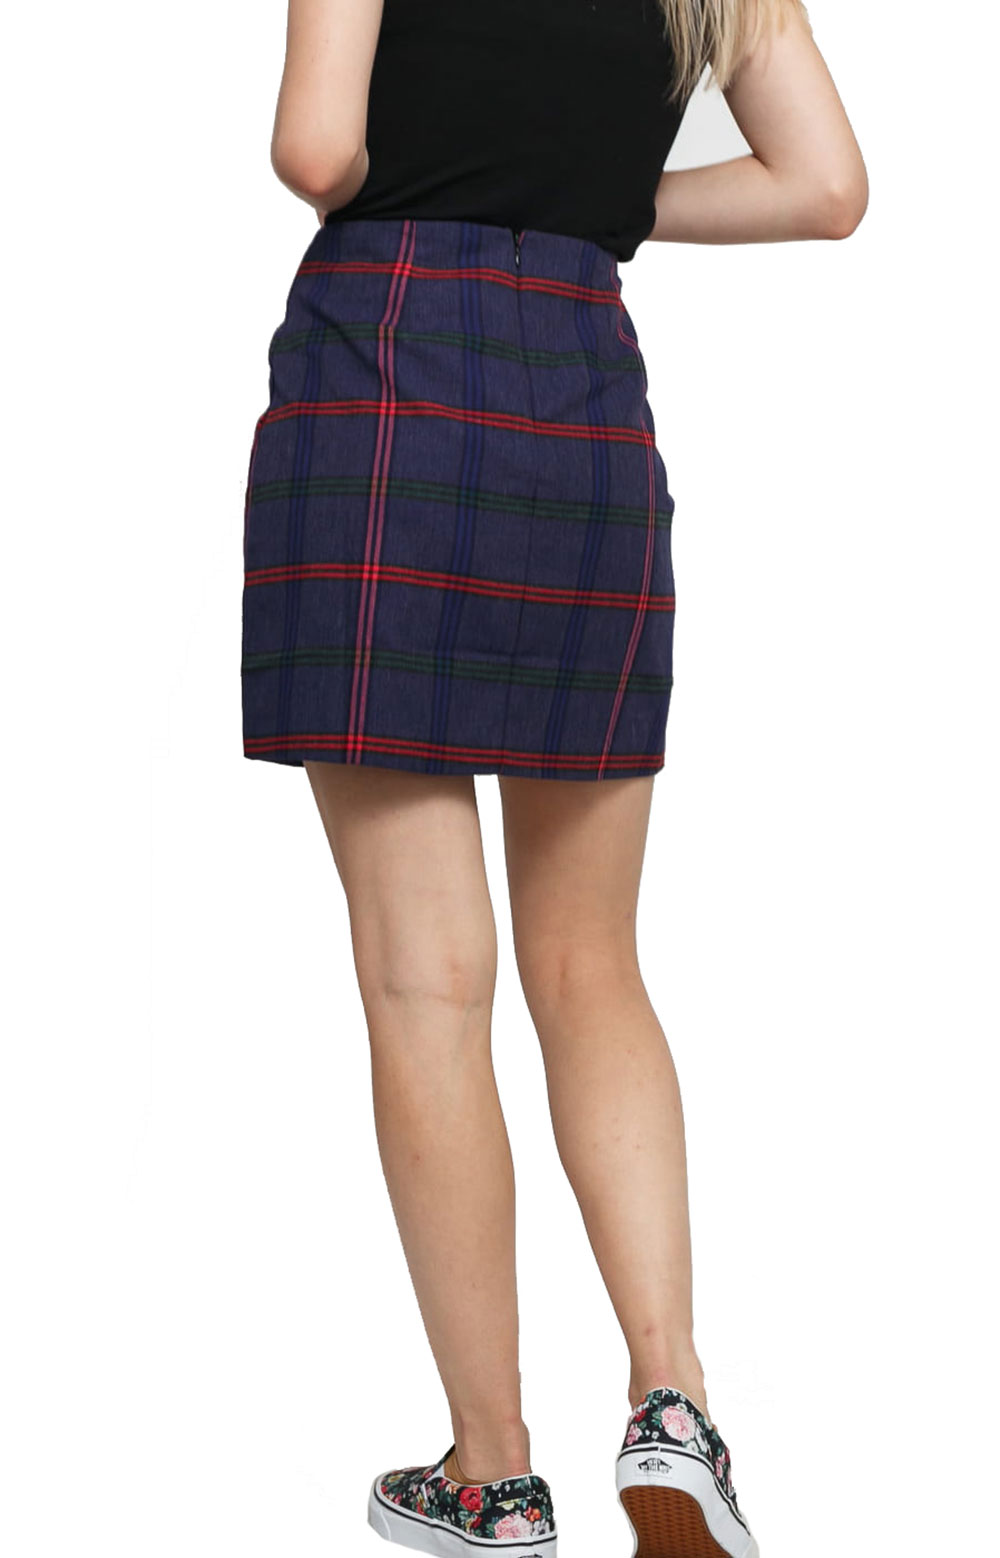 Getting Plaid Kilt Skirt  2